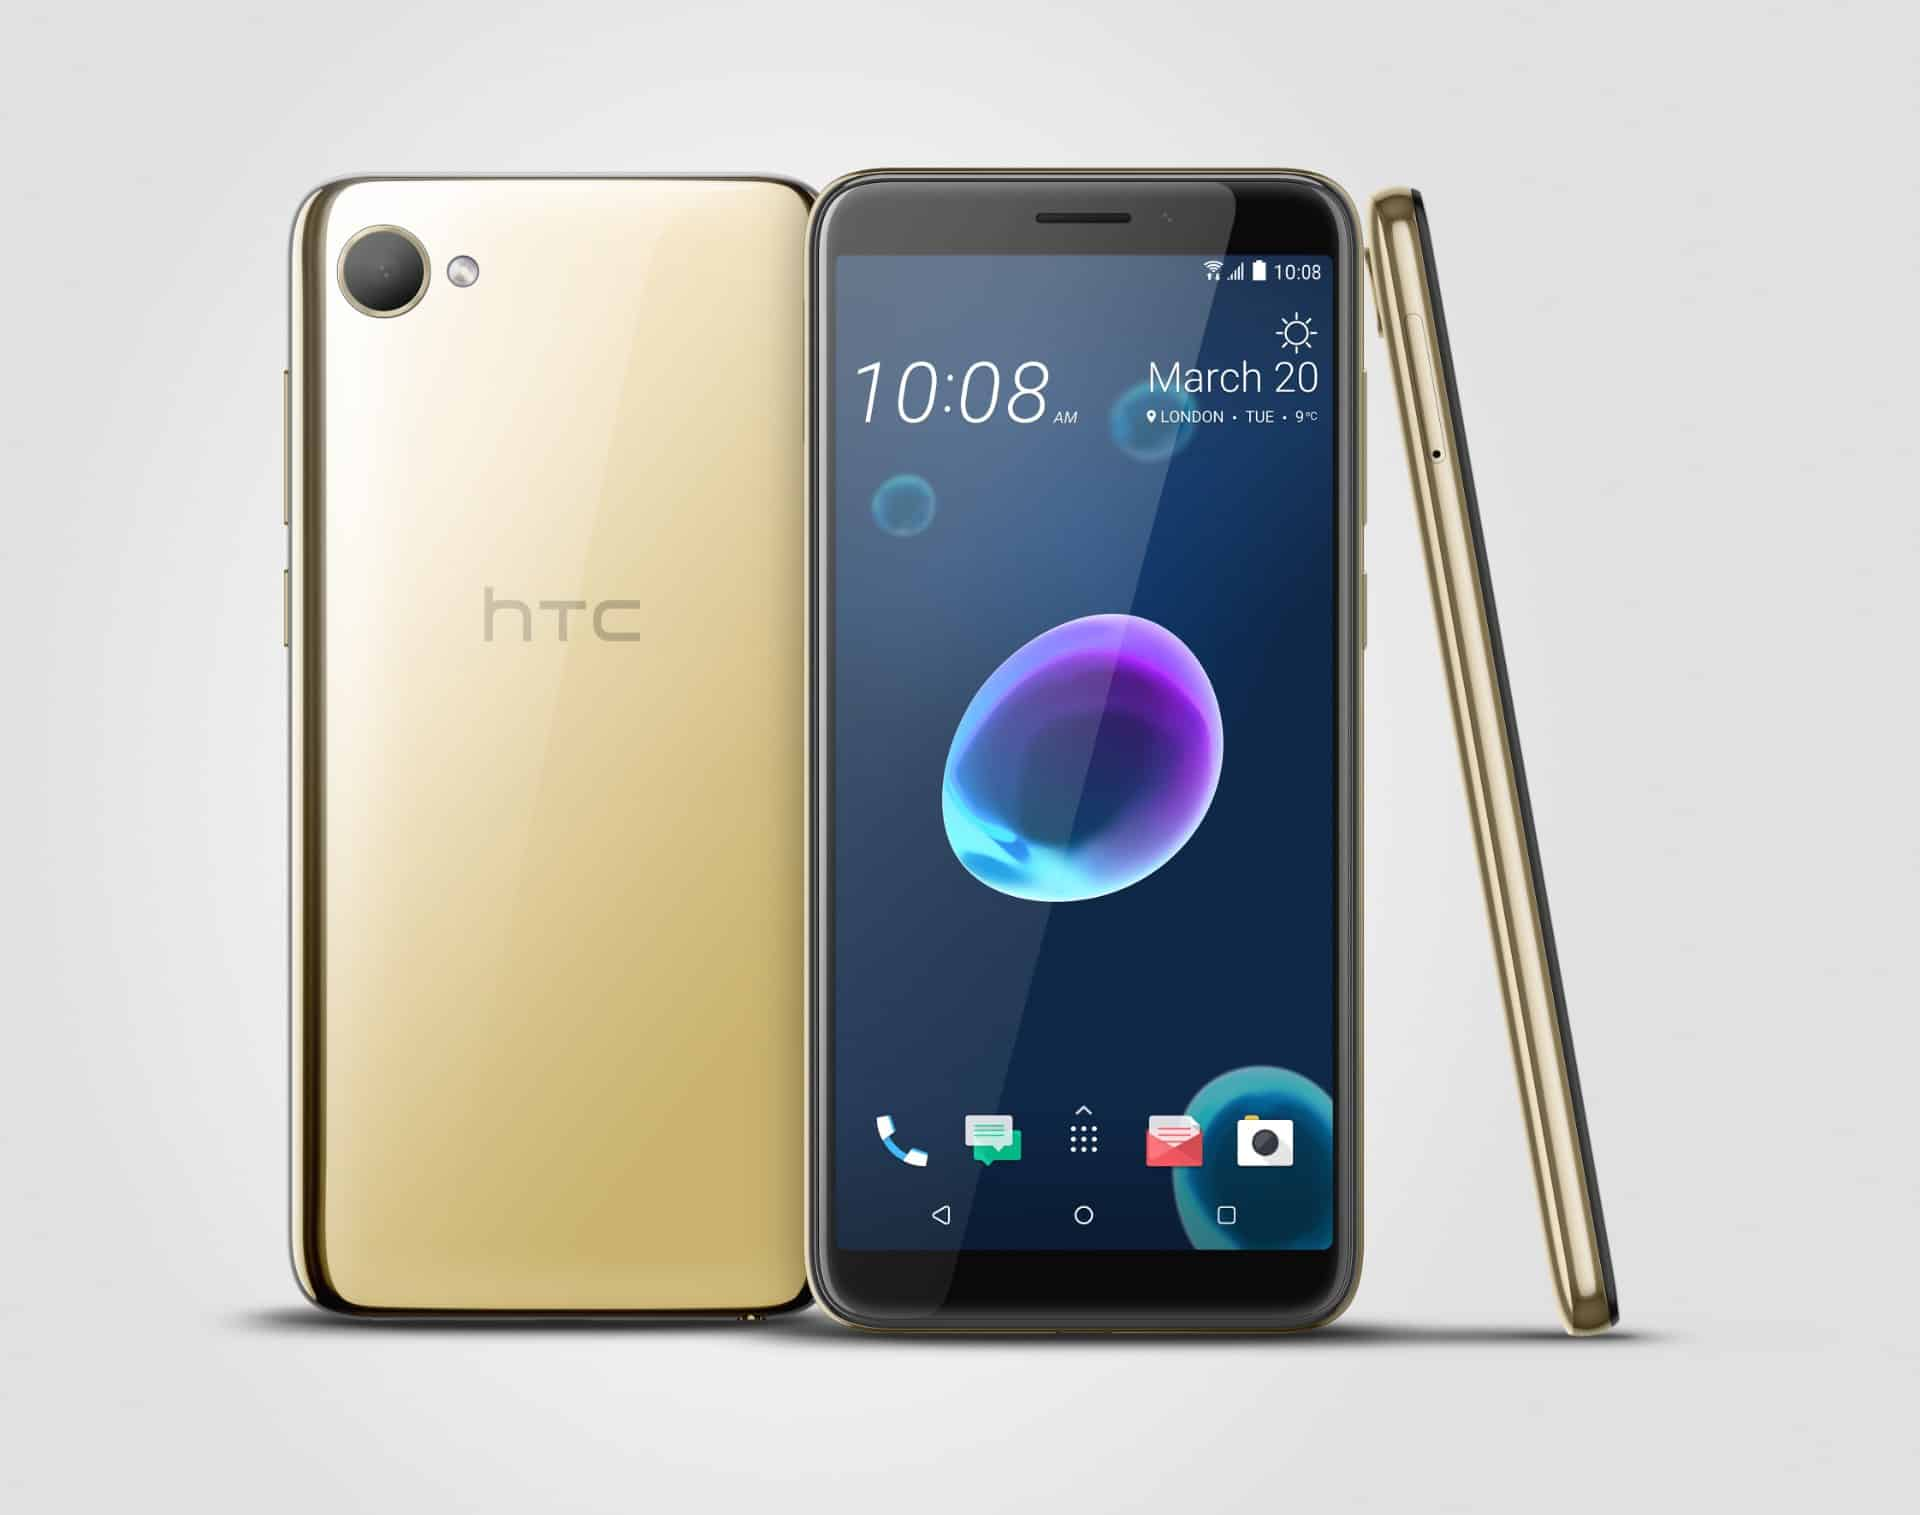 The Desire 12 and Desire 12+ are HTC's budget 18:9 smartphones